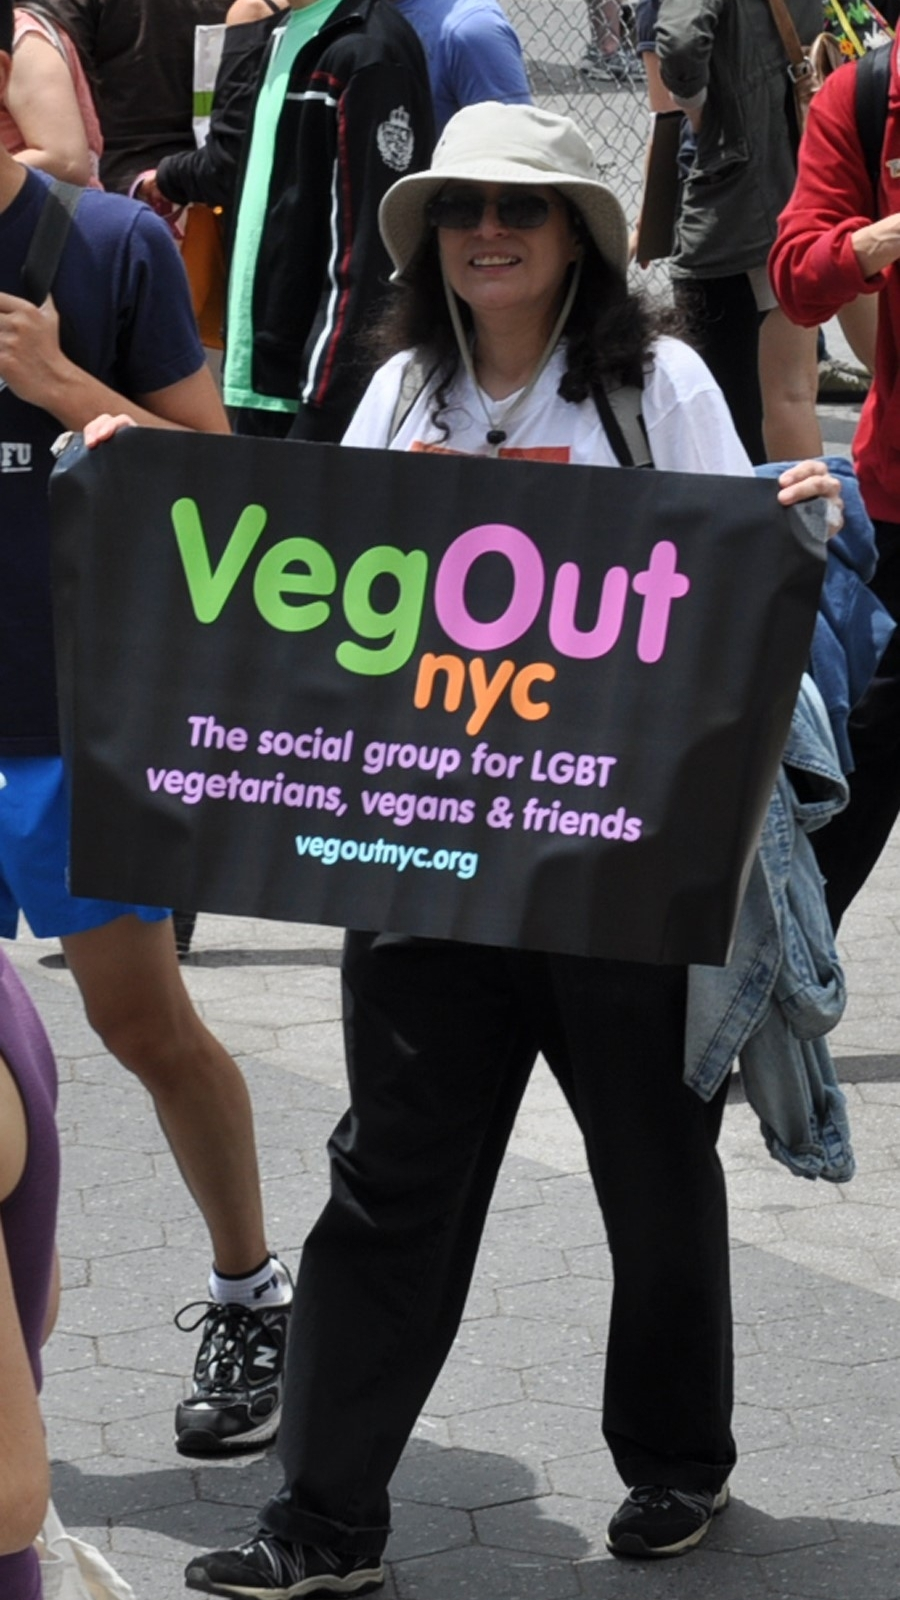 1-vegout-person.jpg